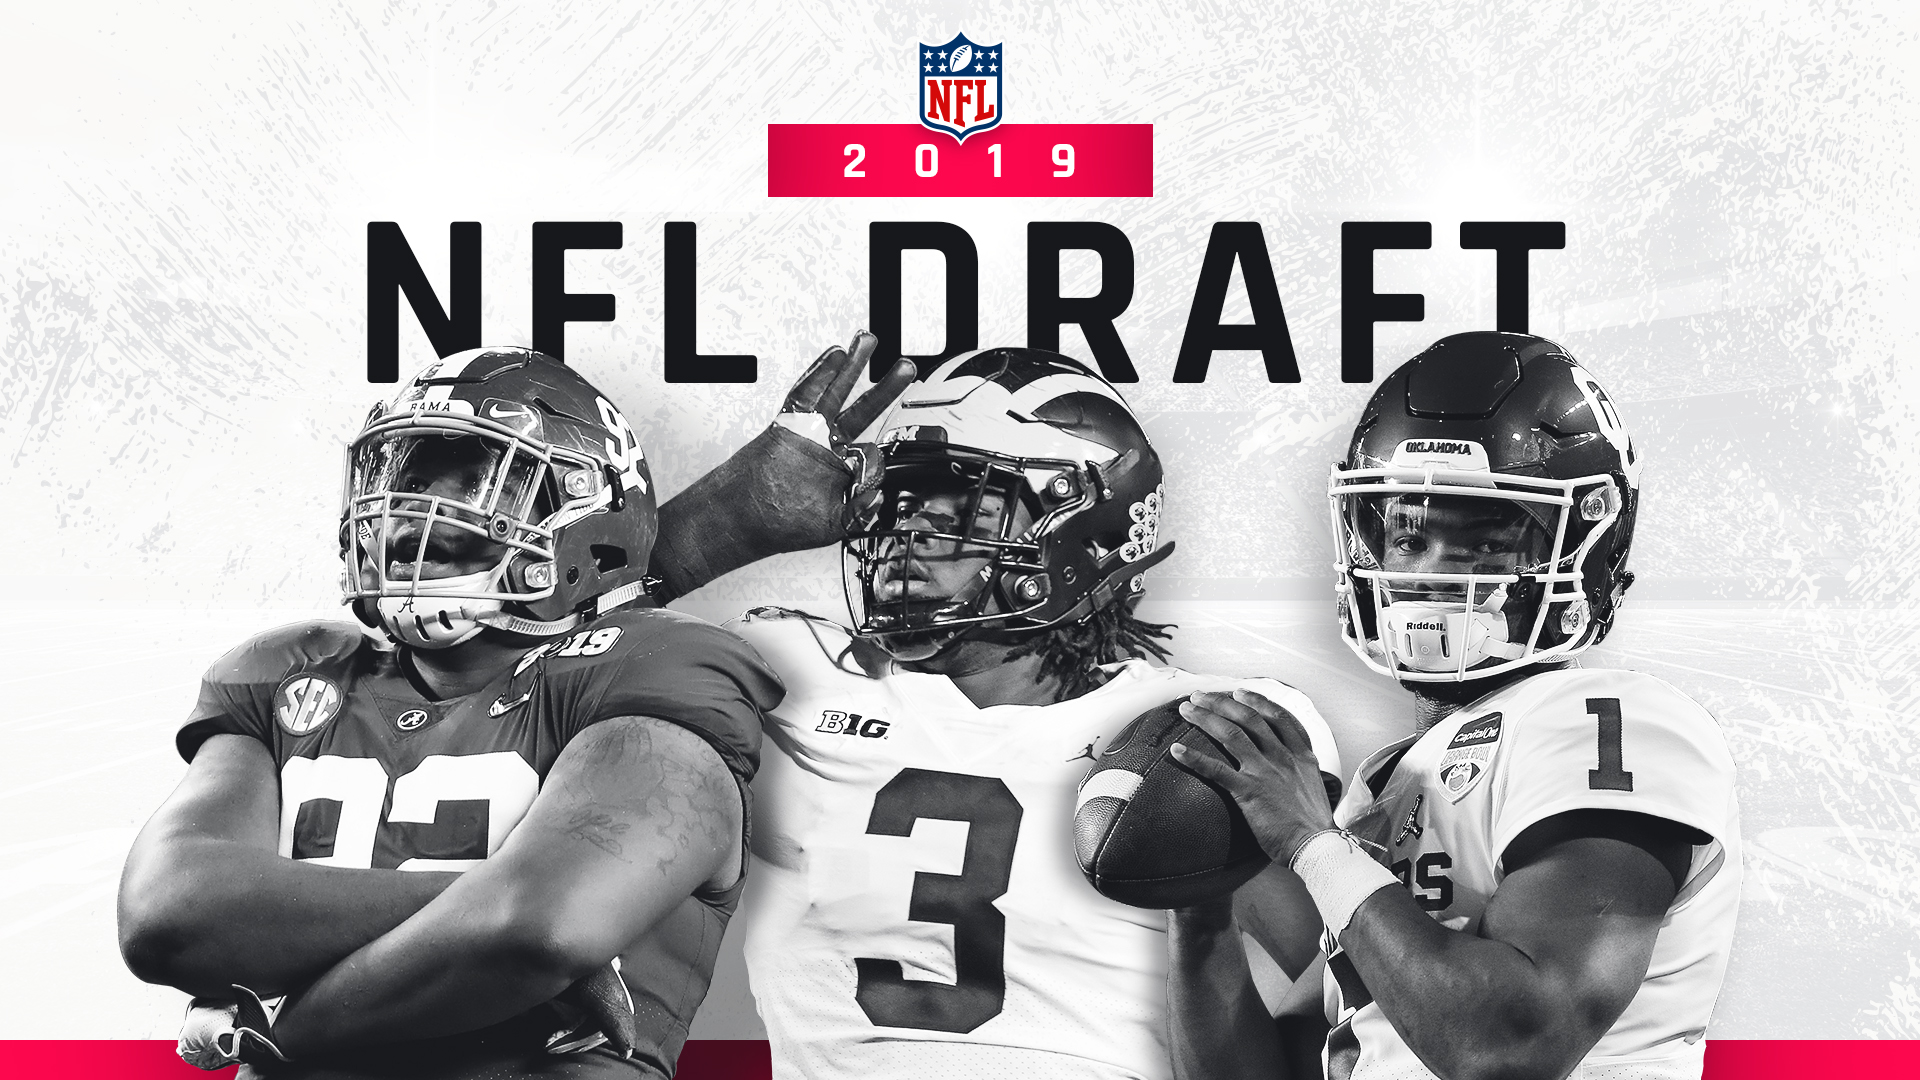 Nfl Draft Picks 2019 Complete Draft Results From Rounds 1 7